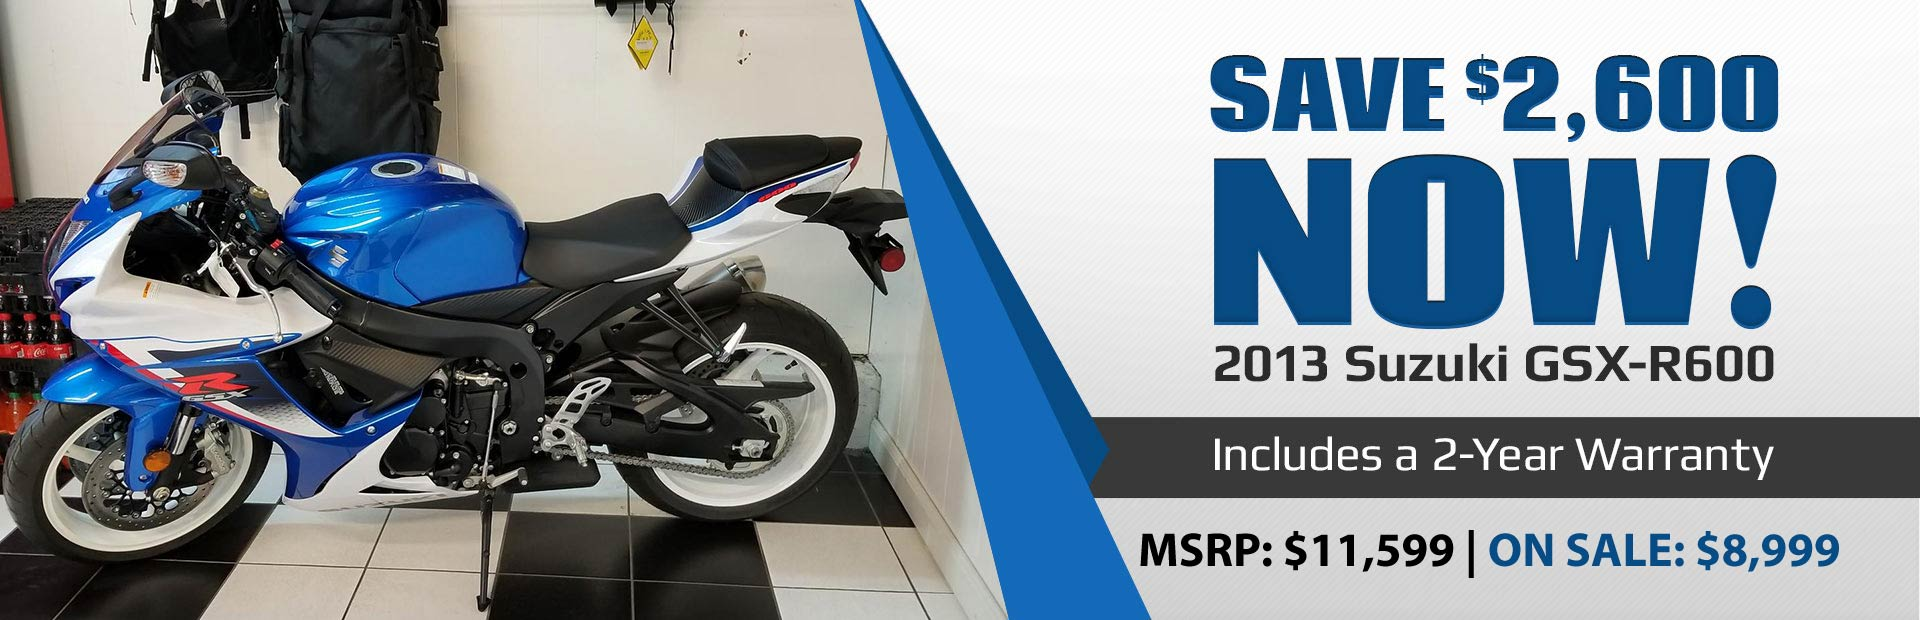 Save $2,600 now on the 2013 Suzuki GSX-R600!